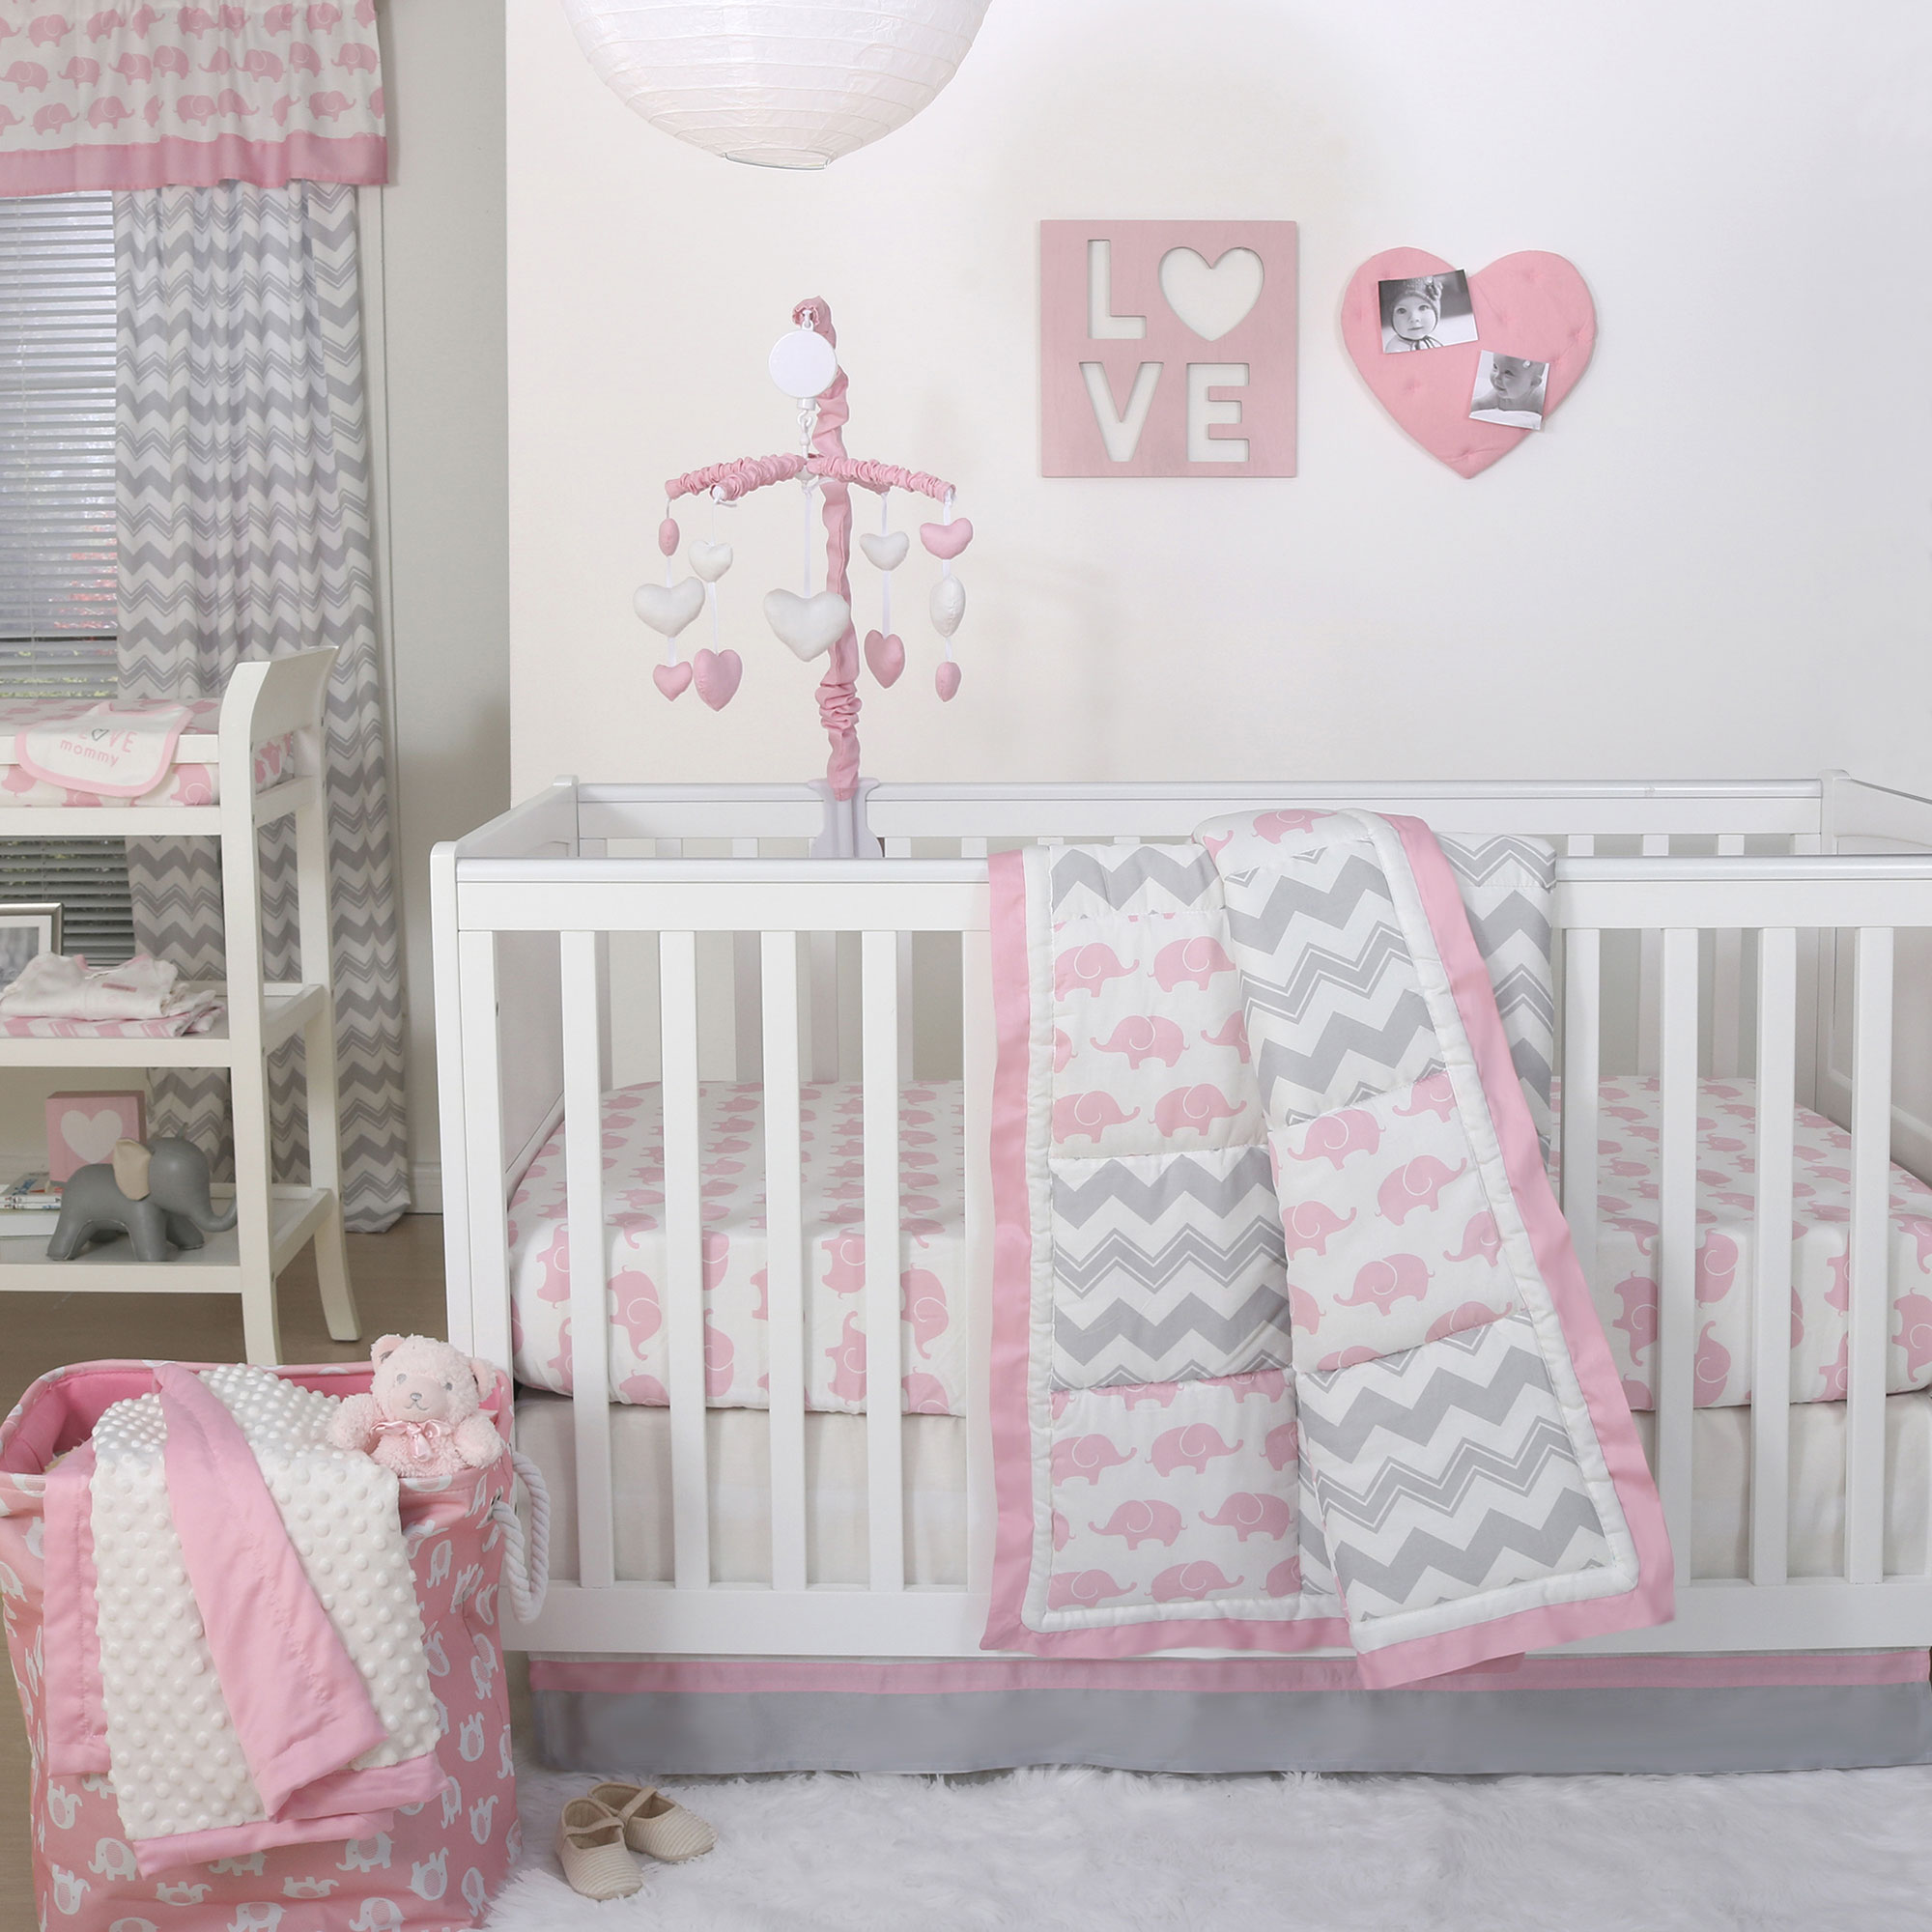 The Peanut Shell 3 Piece Baby Crib Bedding Set - Pink Elephant and Grey Zig Zag Patchwork - 100% Cotton Quilt, Crib Skirt and Sheet